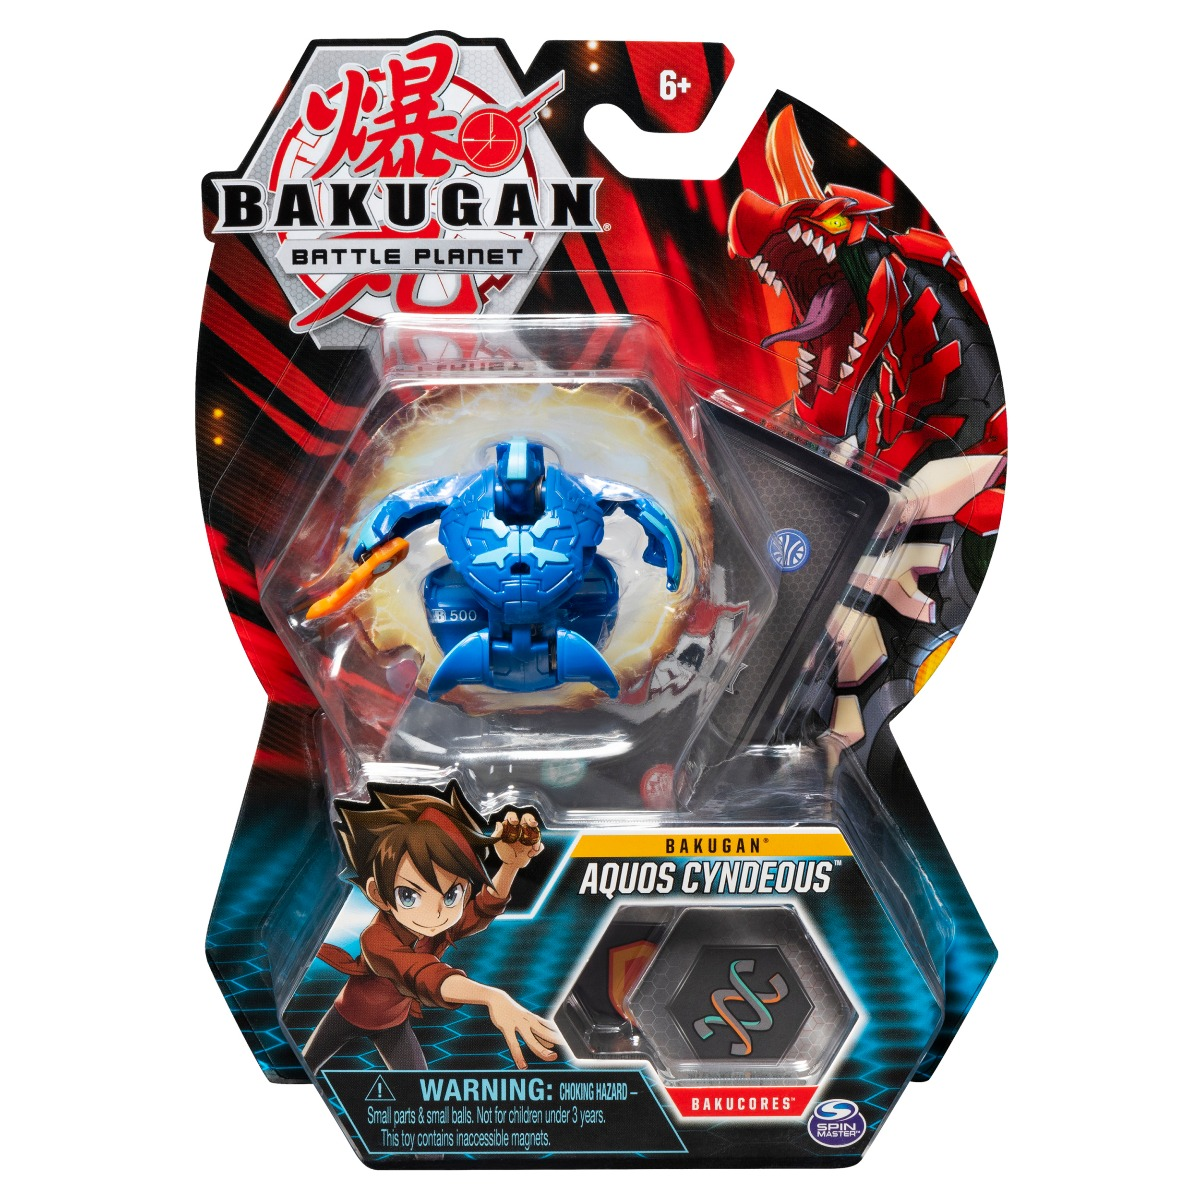 Figurina Bakugan Battle Planet, Aquos Cyndeous, 20119733